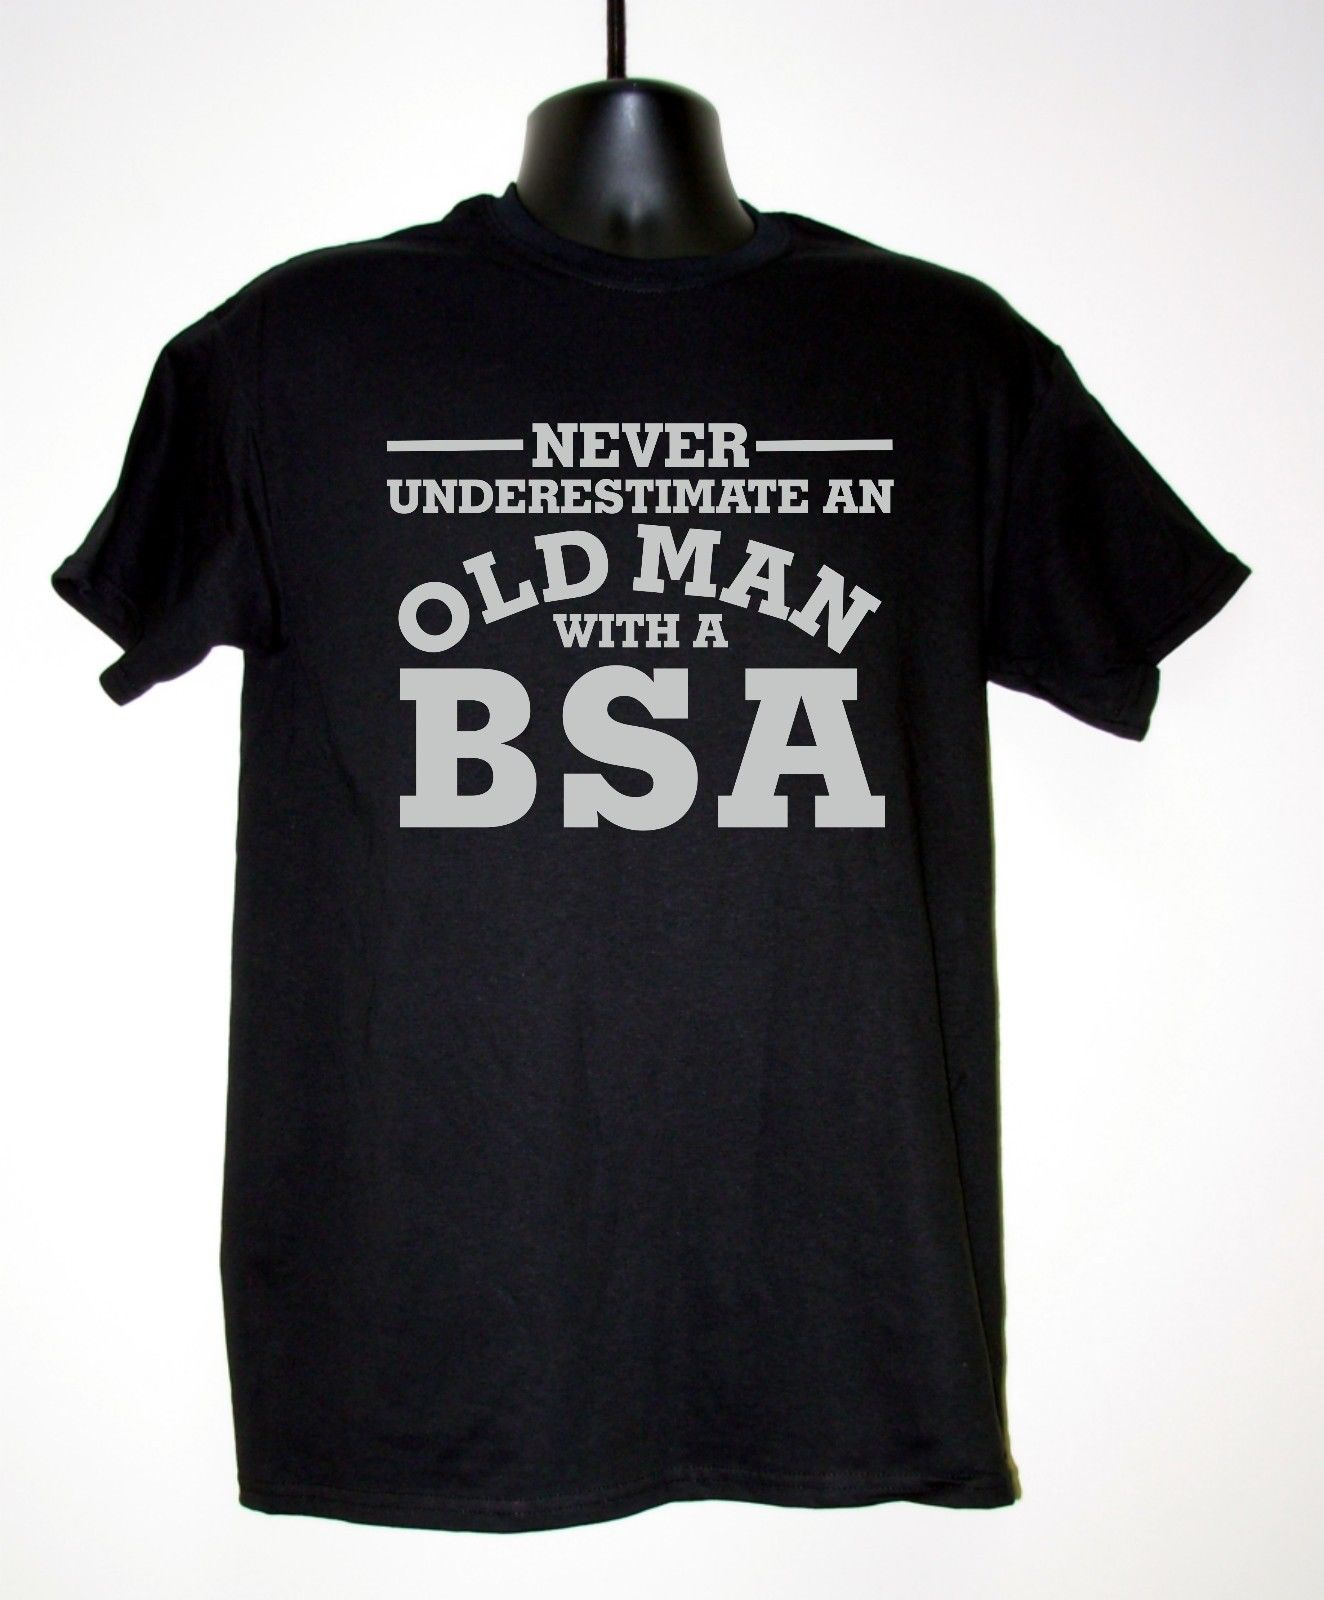 MEN'S LICENSED MOTORBIKE T-<font><b>SHIRT</b></font> -NEVER UNDERESTIMATE OLD MAN WITH <font><b>BSA</b></font> S-3XL New T <font><b>Shirts</b></font> Funny Tops Tee New Unisex Funny Tops image